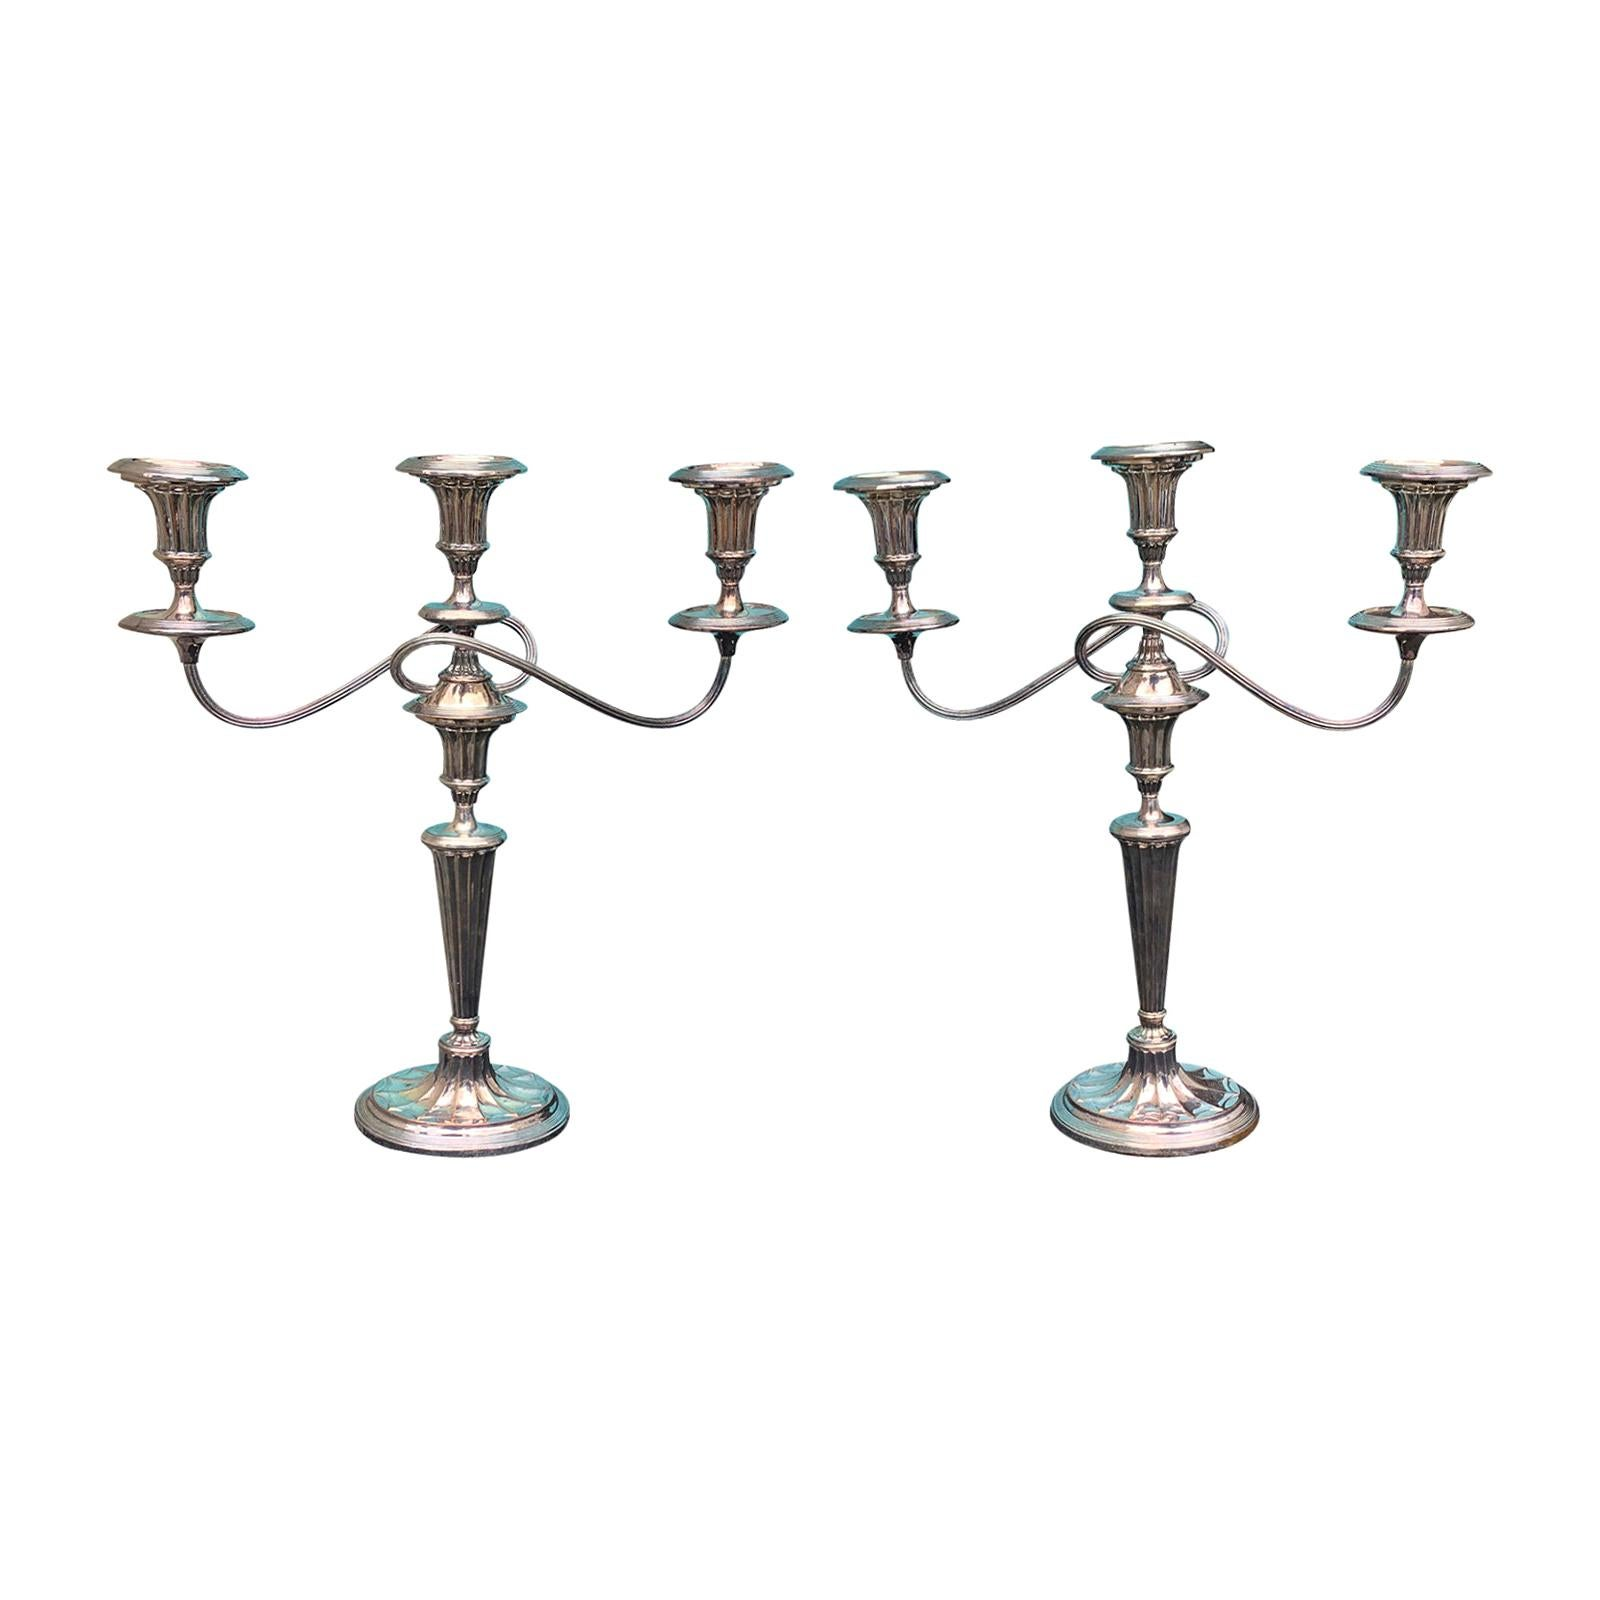 Pair of 19th-20th Century Sheffield Silver Three-Arm Candelabras, Unmarked